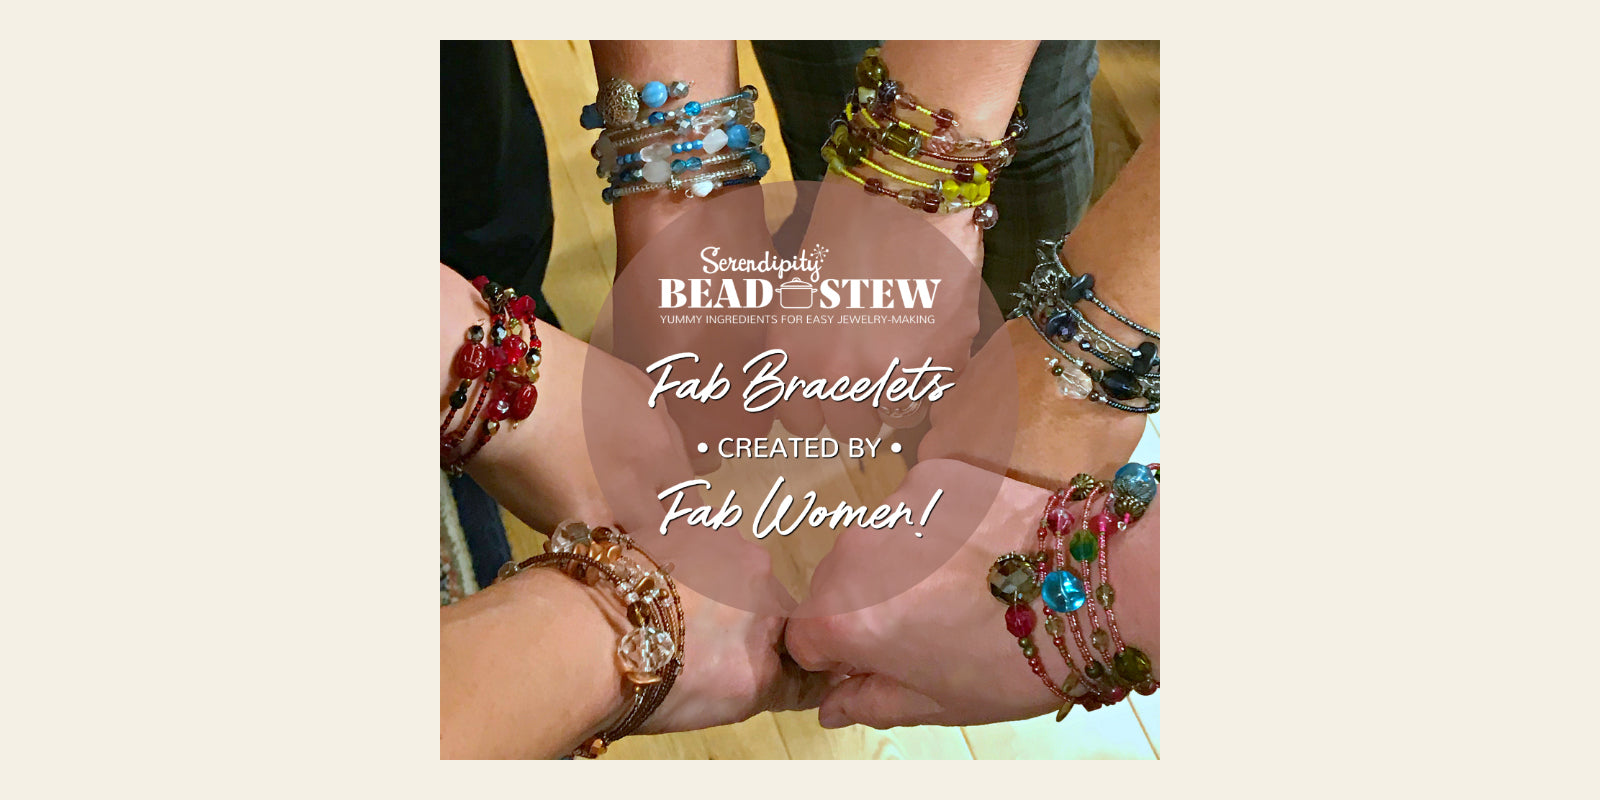 Being creative feels good, so Suzie Q Studio BEAD STEW Jewelry-Making Parties make the perfect get-together for any occasion! Whether you choose to have a theme for your bracelet-making party or not, you'll create a one-of-a-kind bangle-style bracelet that will be a reminder of the wonderful time you shared.